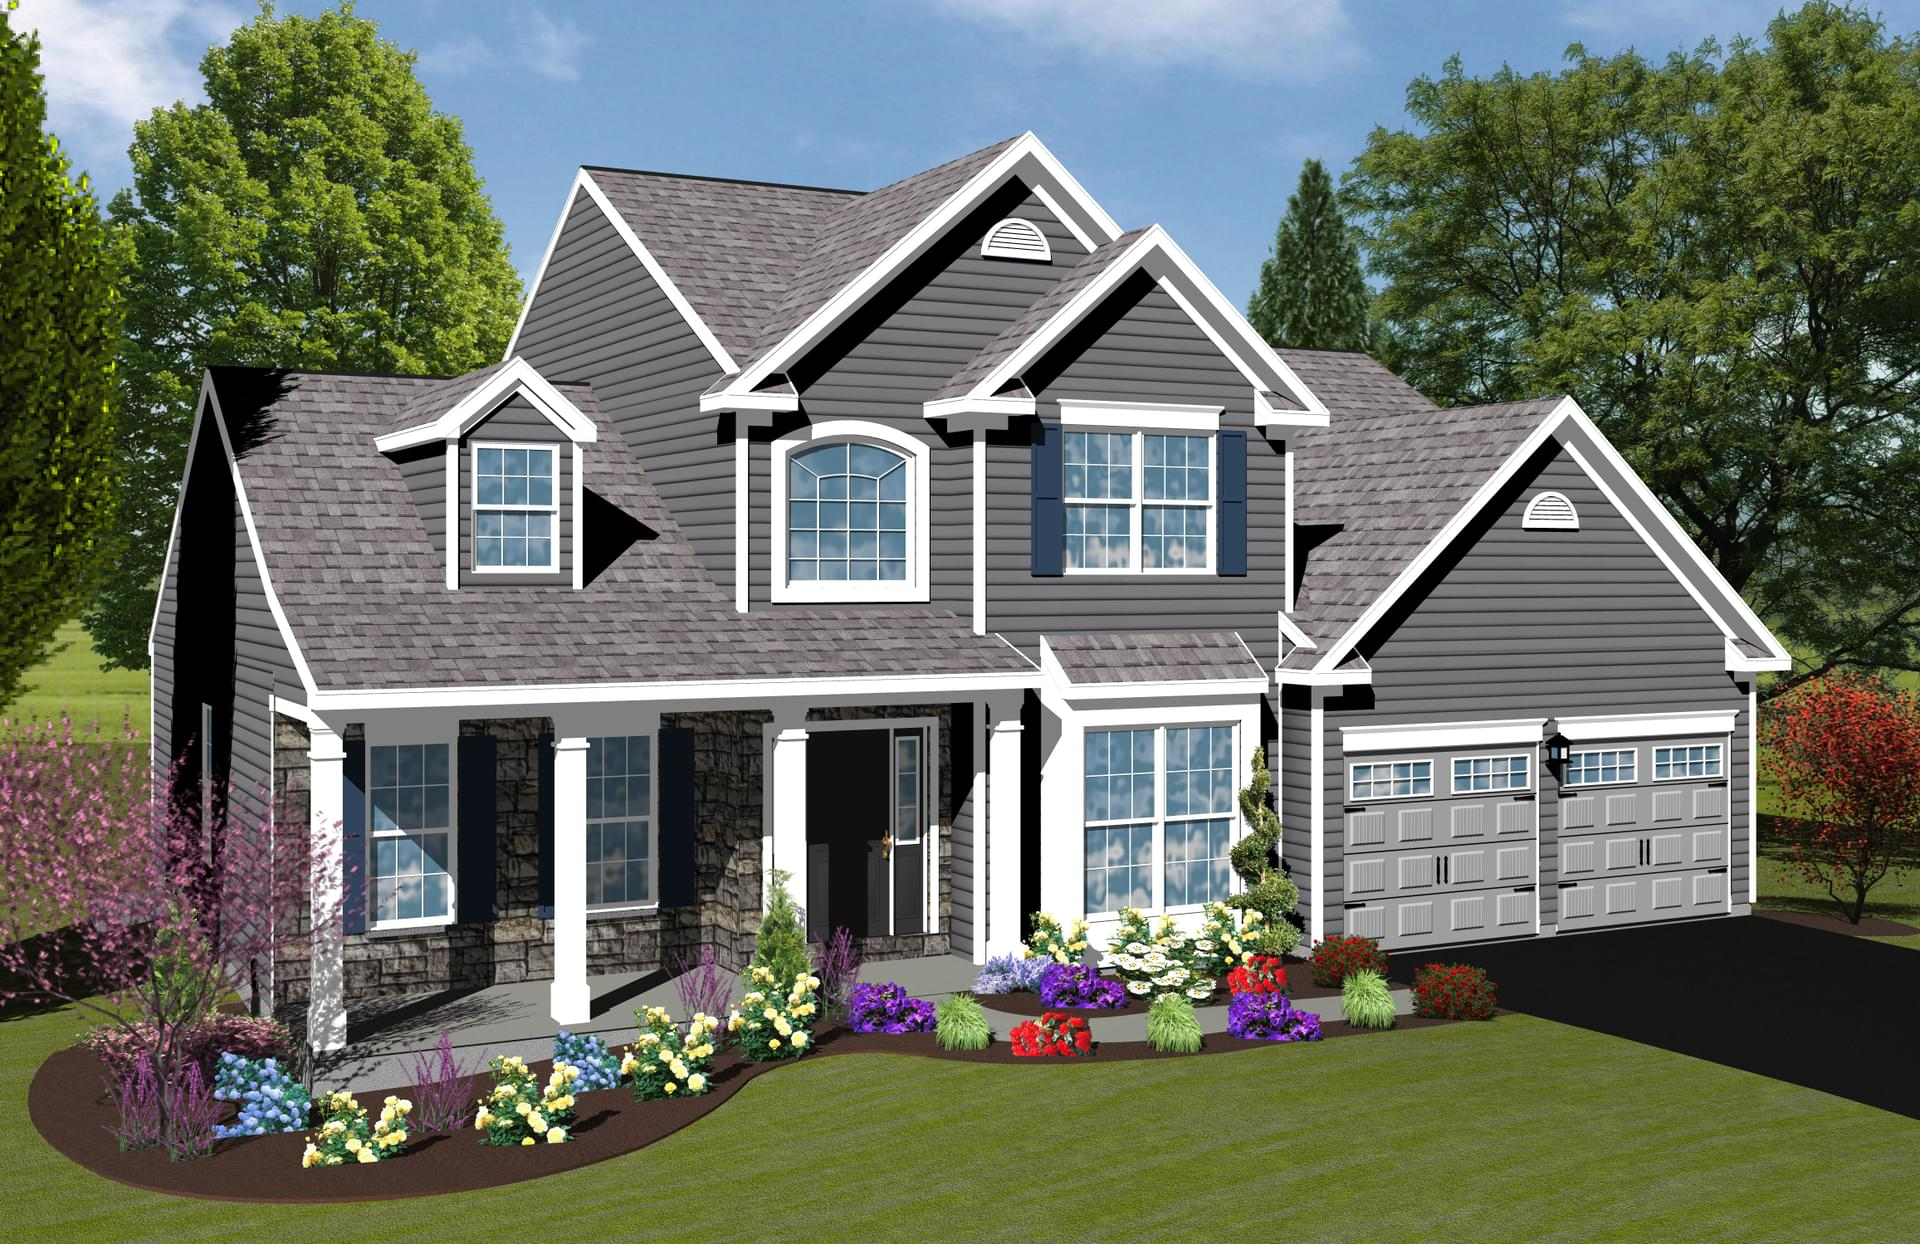 Berks Homes Elevation Image Thornhill